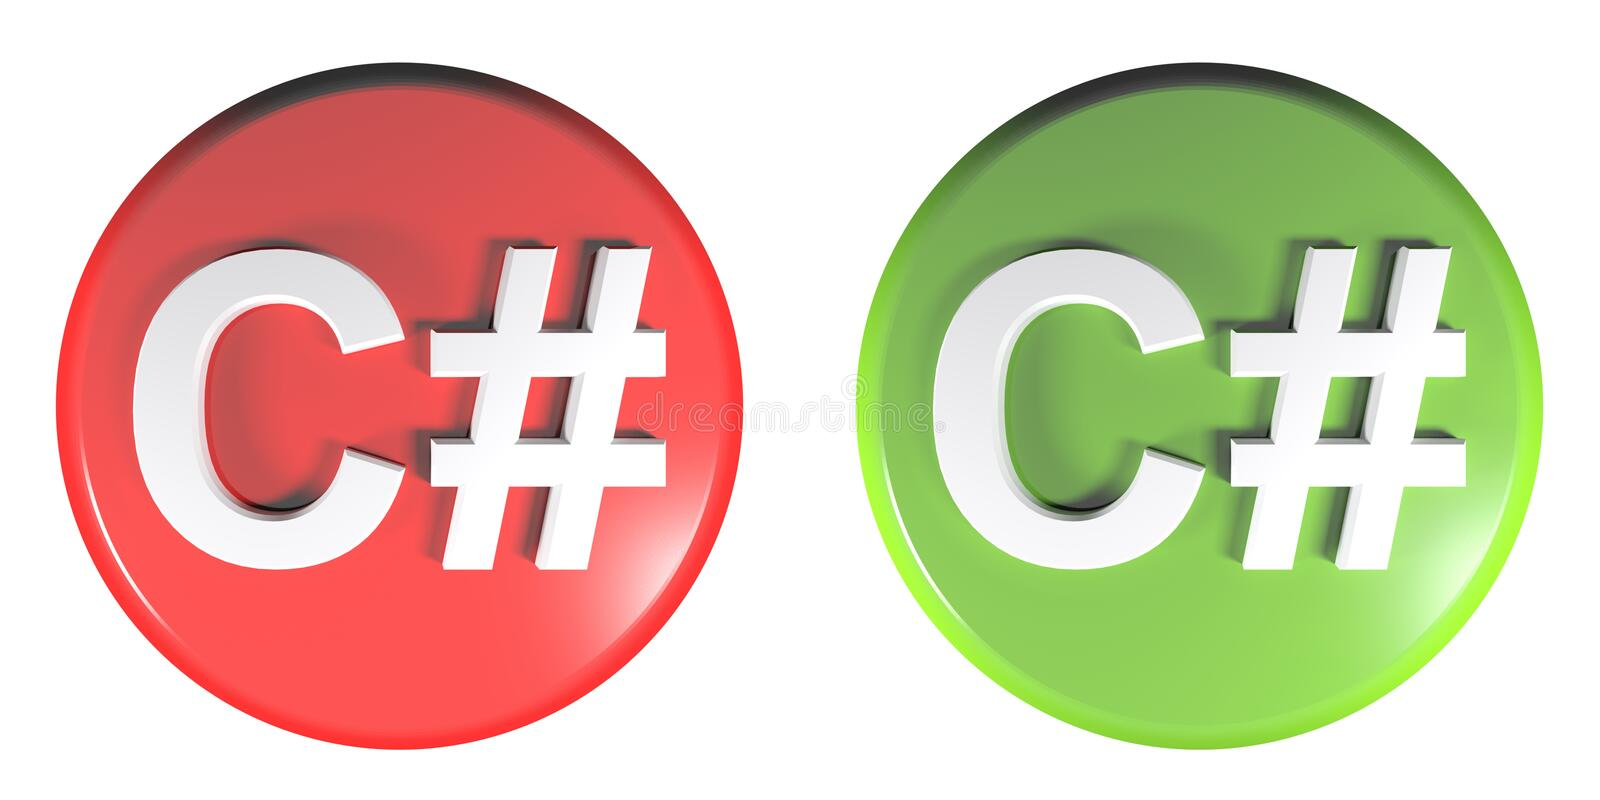 C# red and green circle push buttons - 3D rendering illustration. Two circle push buttons, red and green, isolated on white background, with the write C++ - 3D royalty free illustration